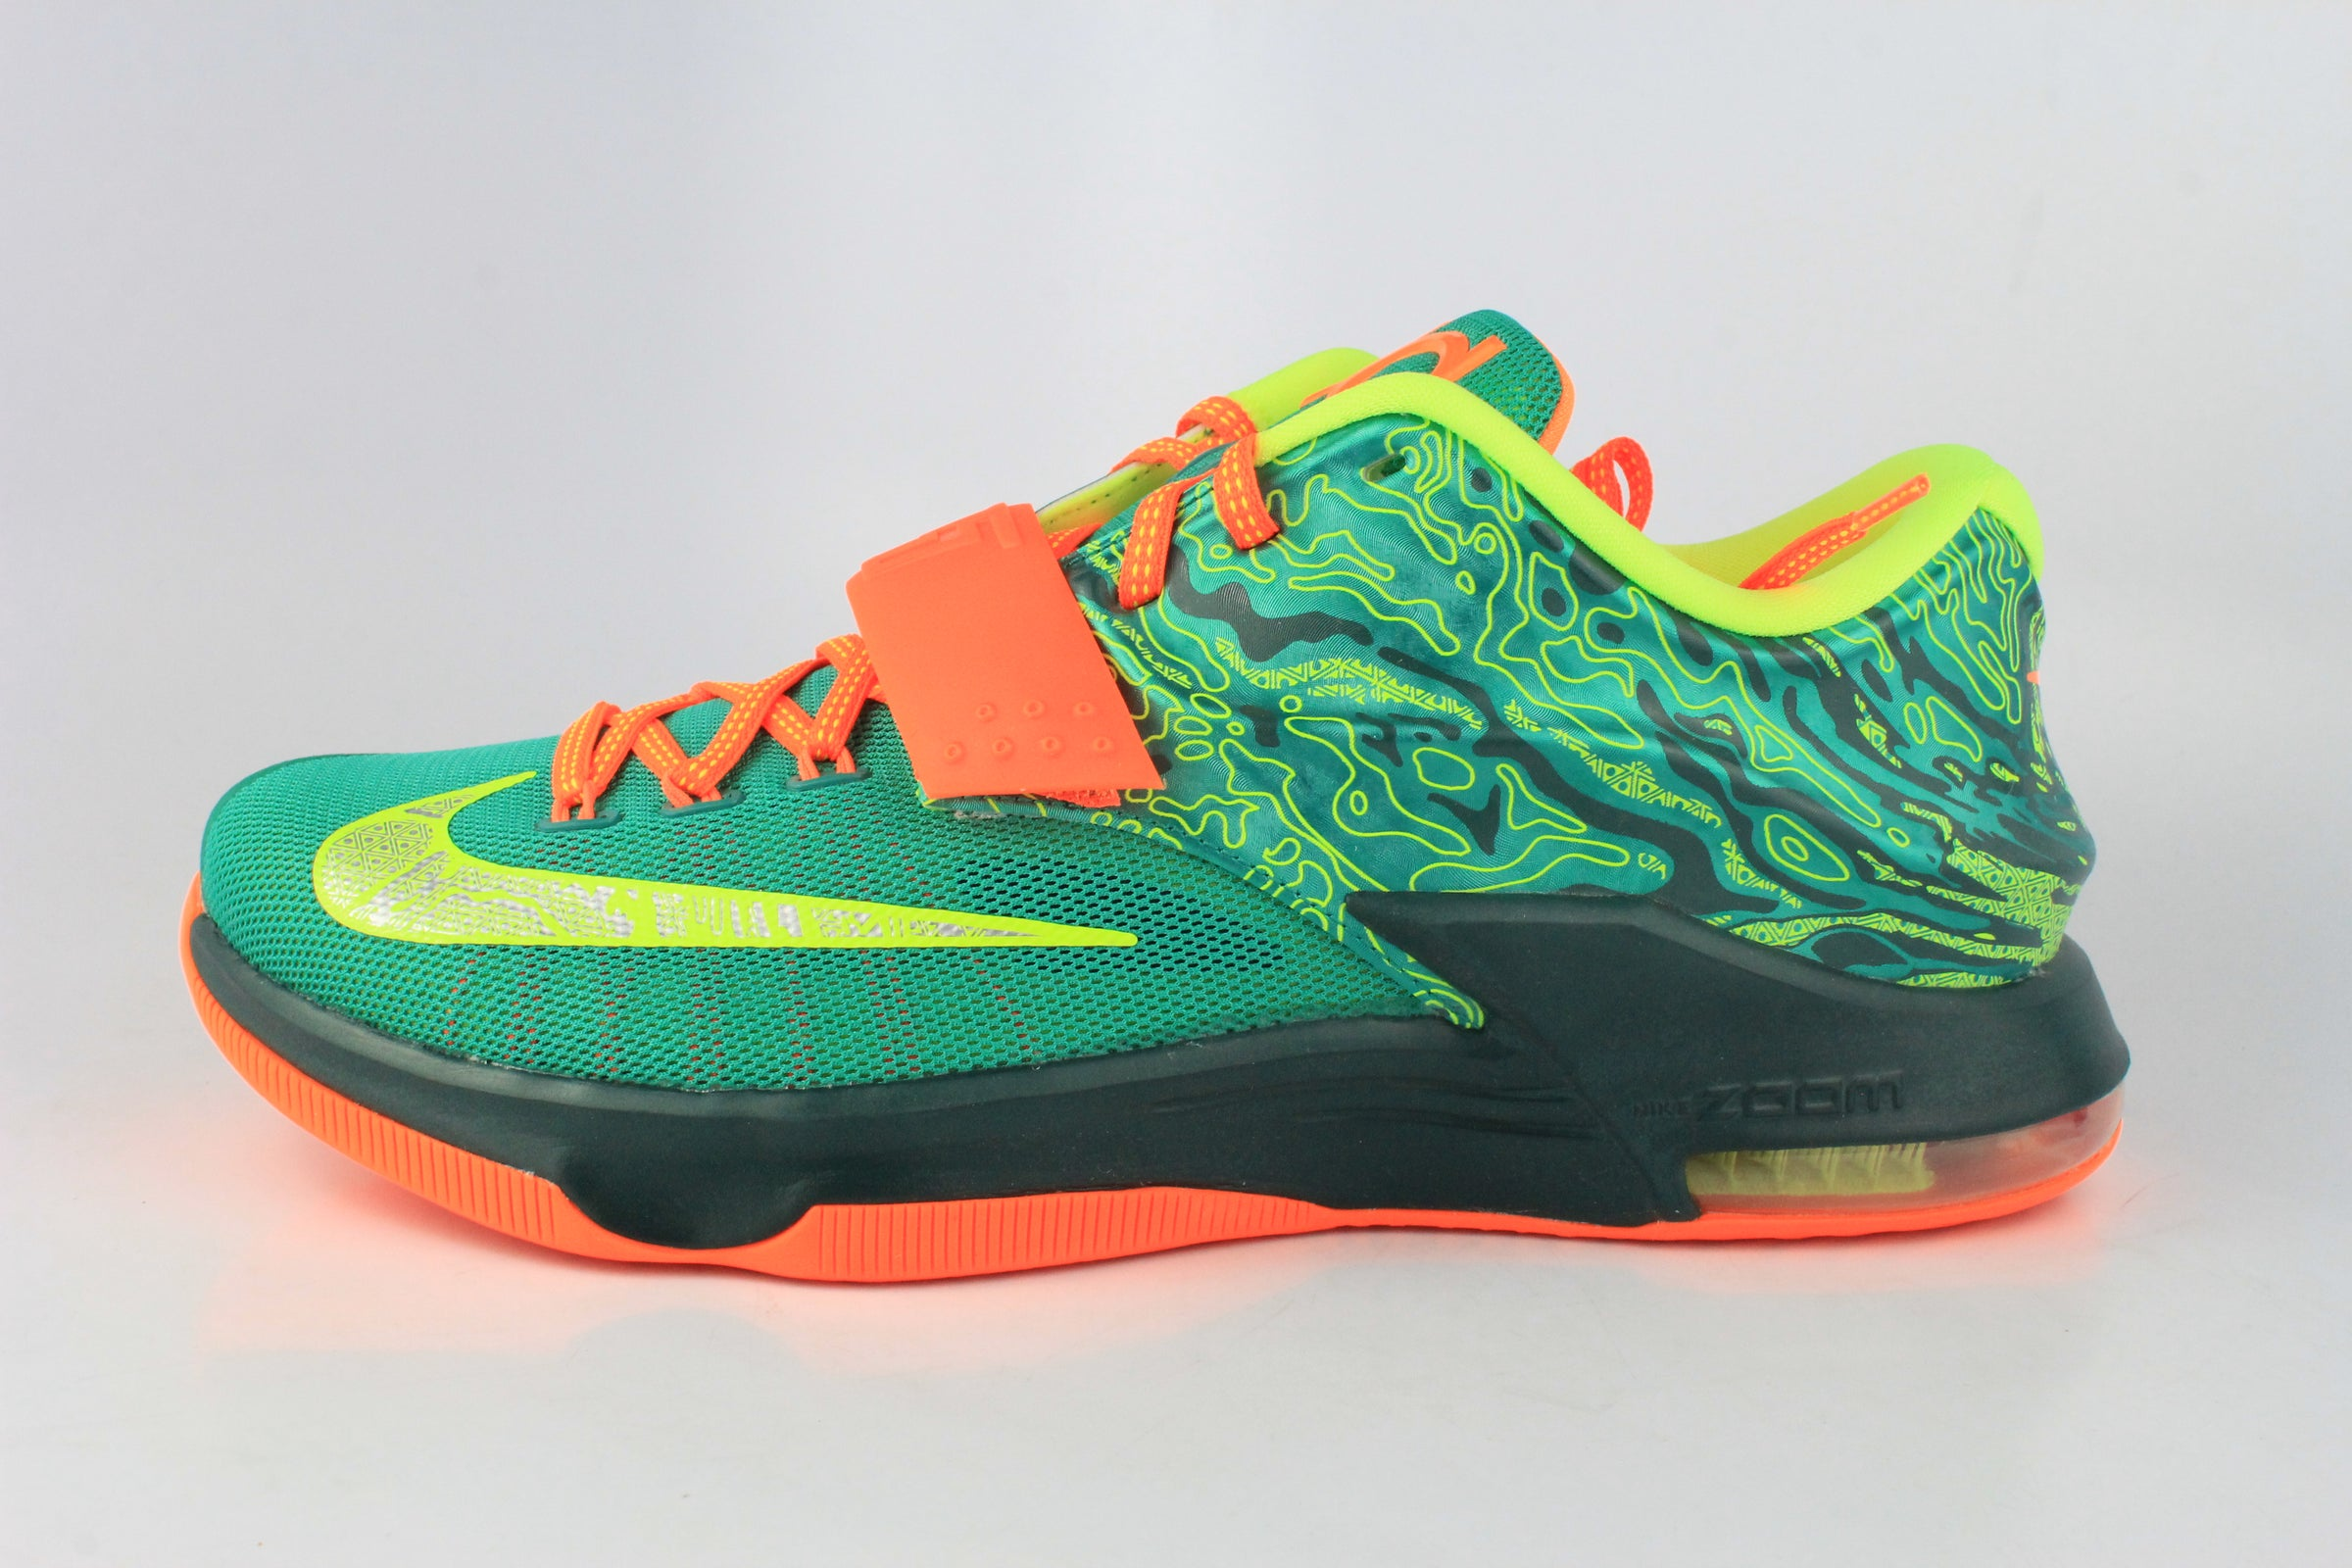 48cd4914e918 ... order 2015 nike kd 7 weatherman 10.5 new cde67 d4a7a